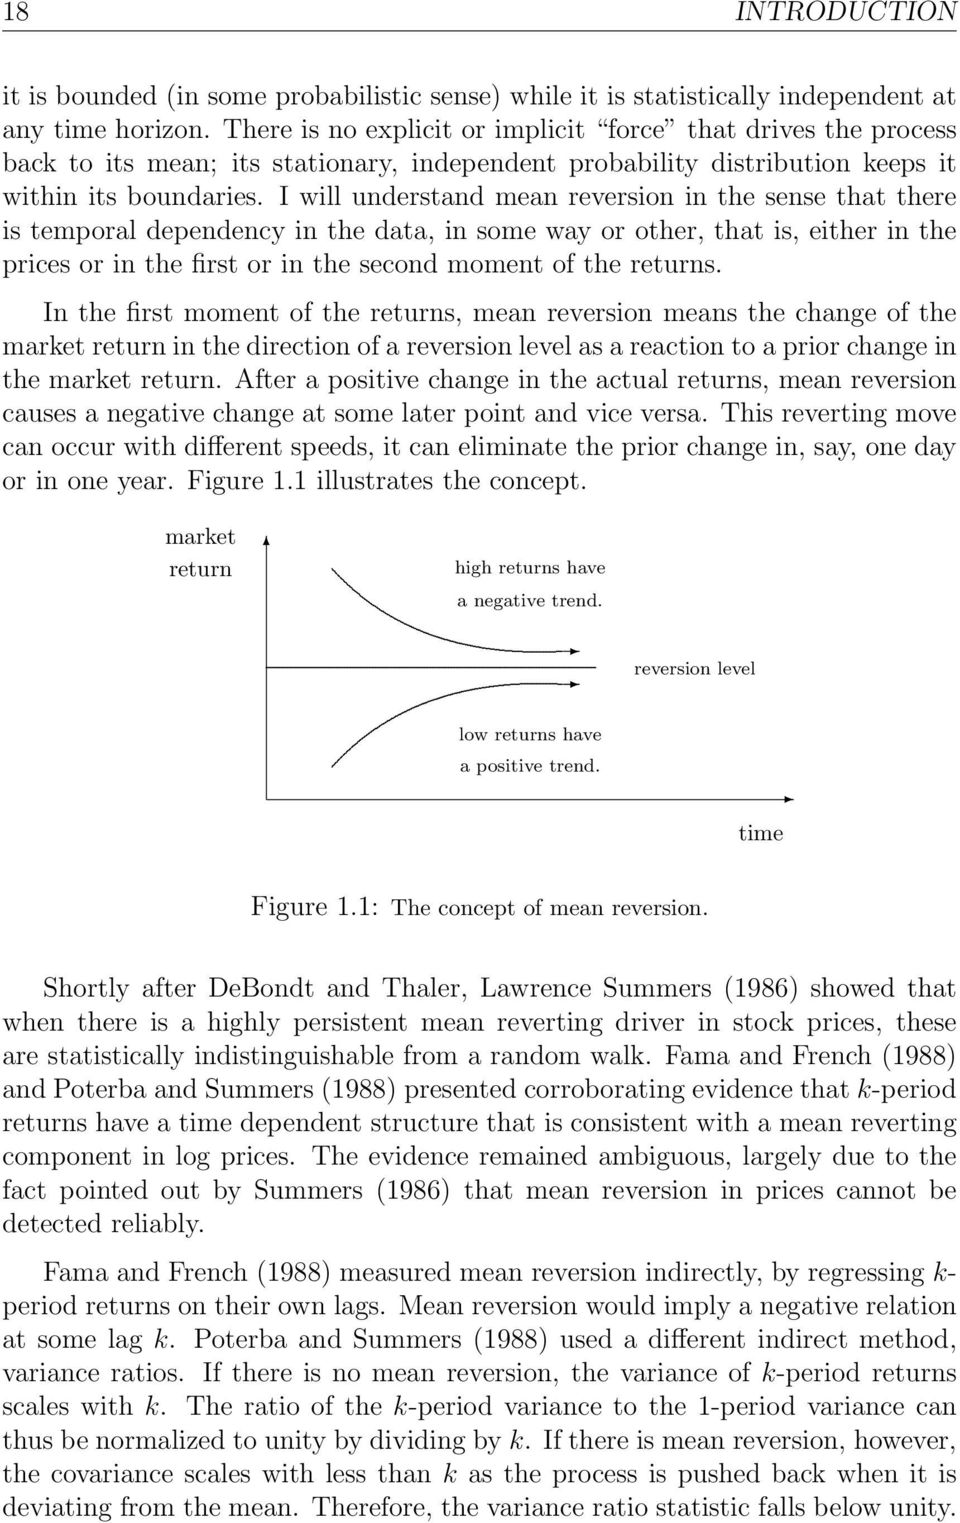 that is, either in the prices or in the first or in the second moment of the returns In the first moment of the returns, mean reversion means the change of the market return in the direction of a